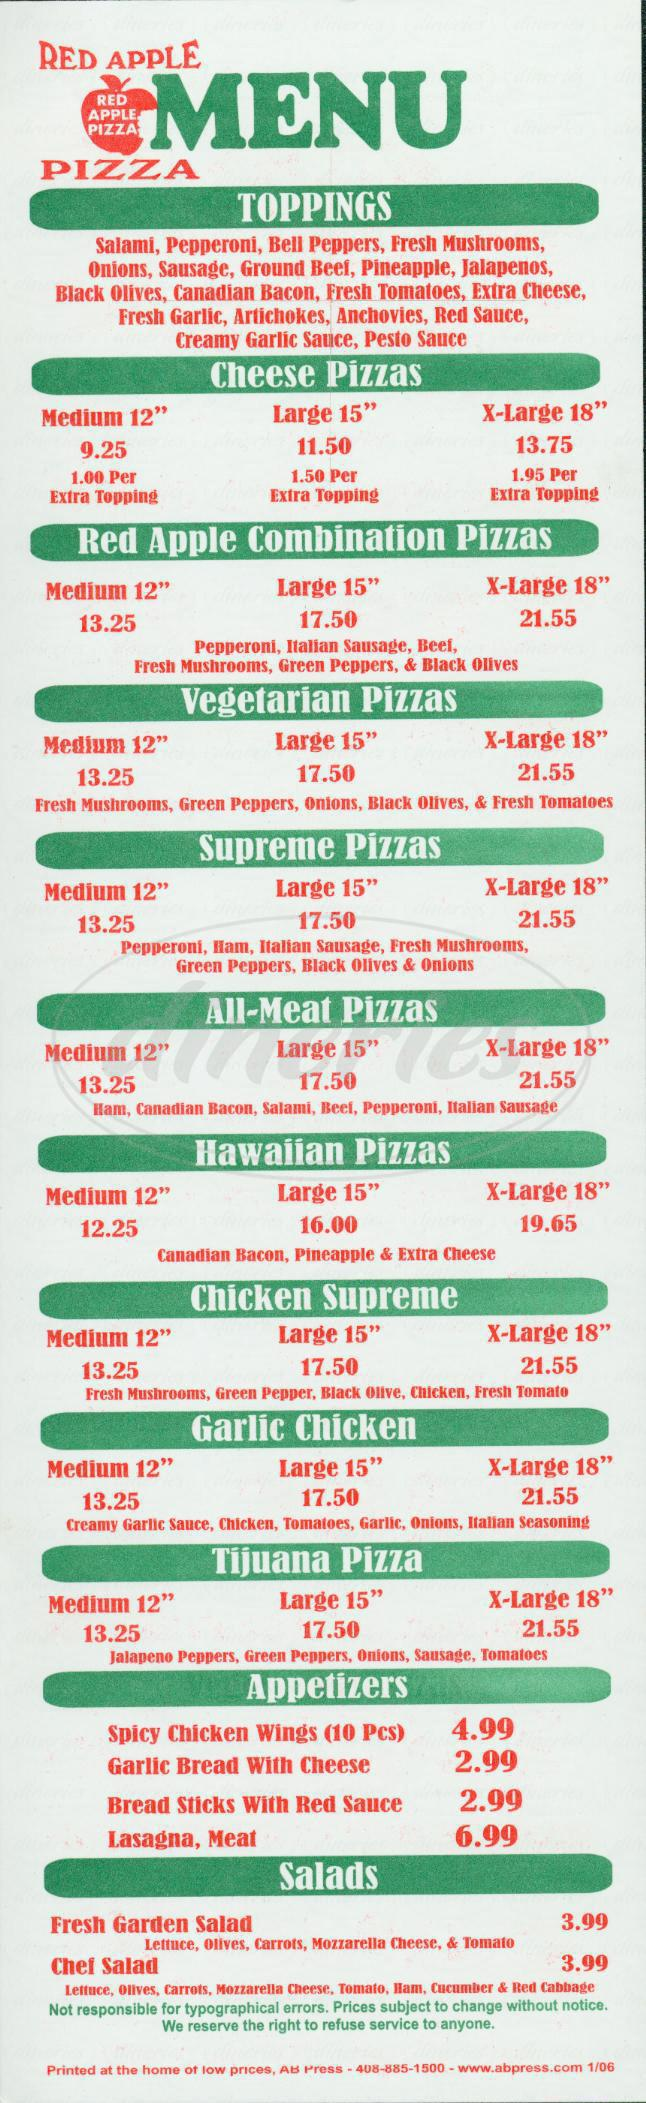 menu for Red Apple Pizza